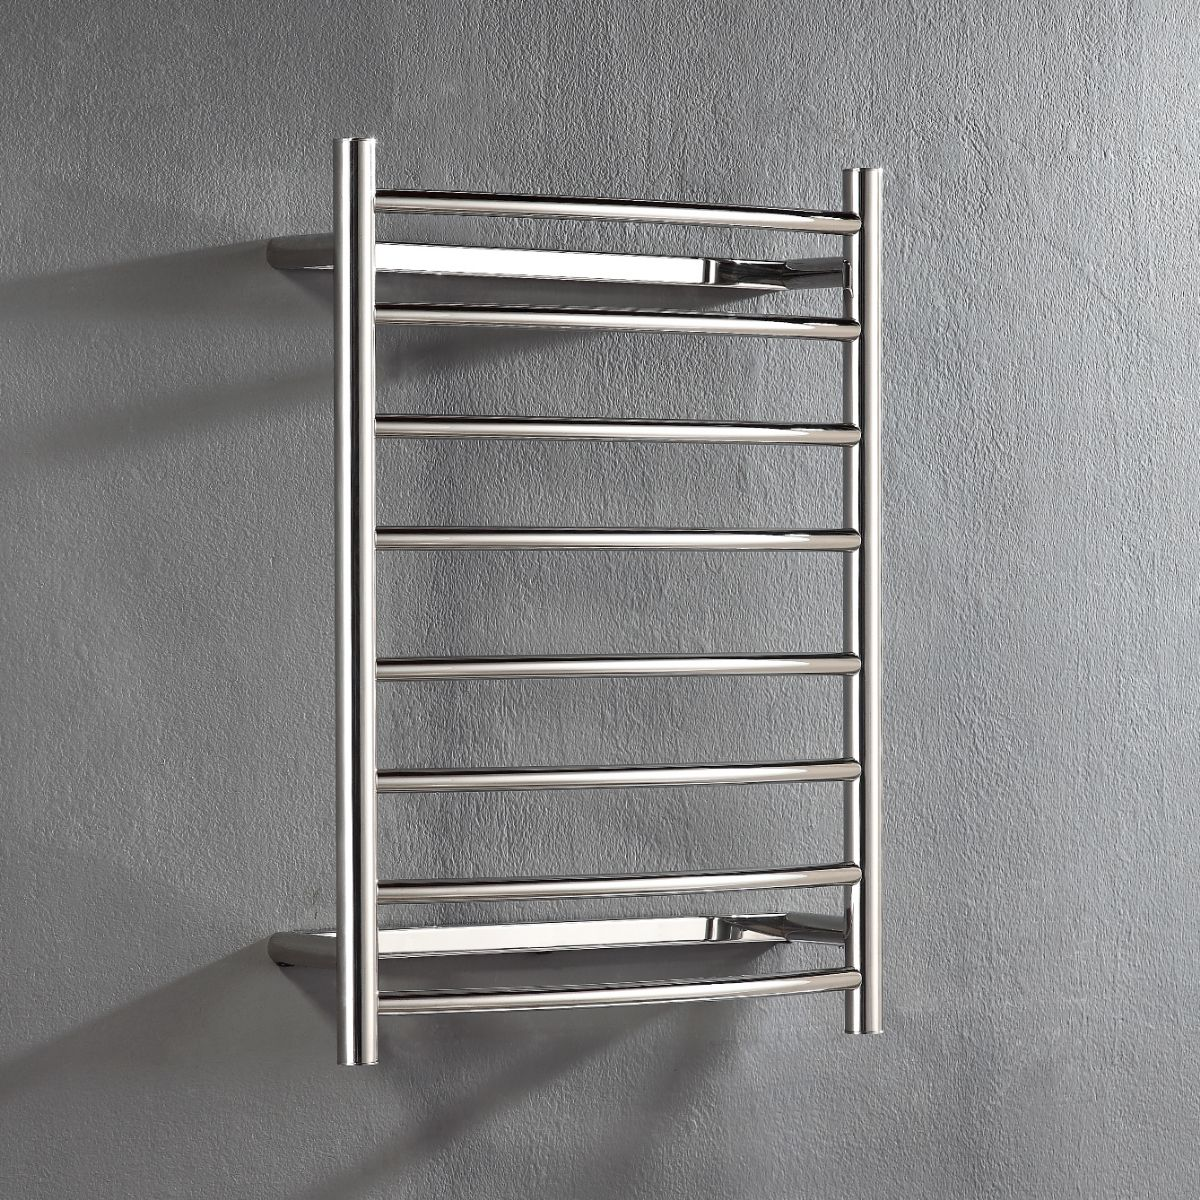 Heated Towel Rail: Hotwire 'Easy Fix' Curved Round. 8 Bar 80W Polished